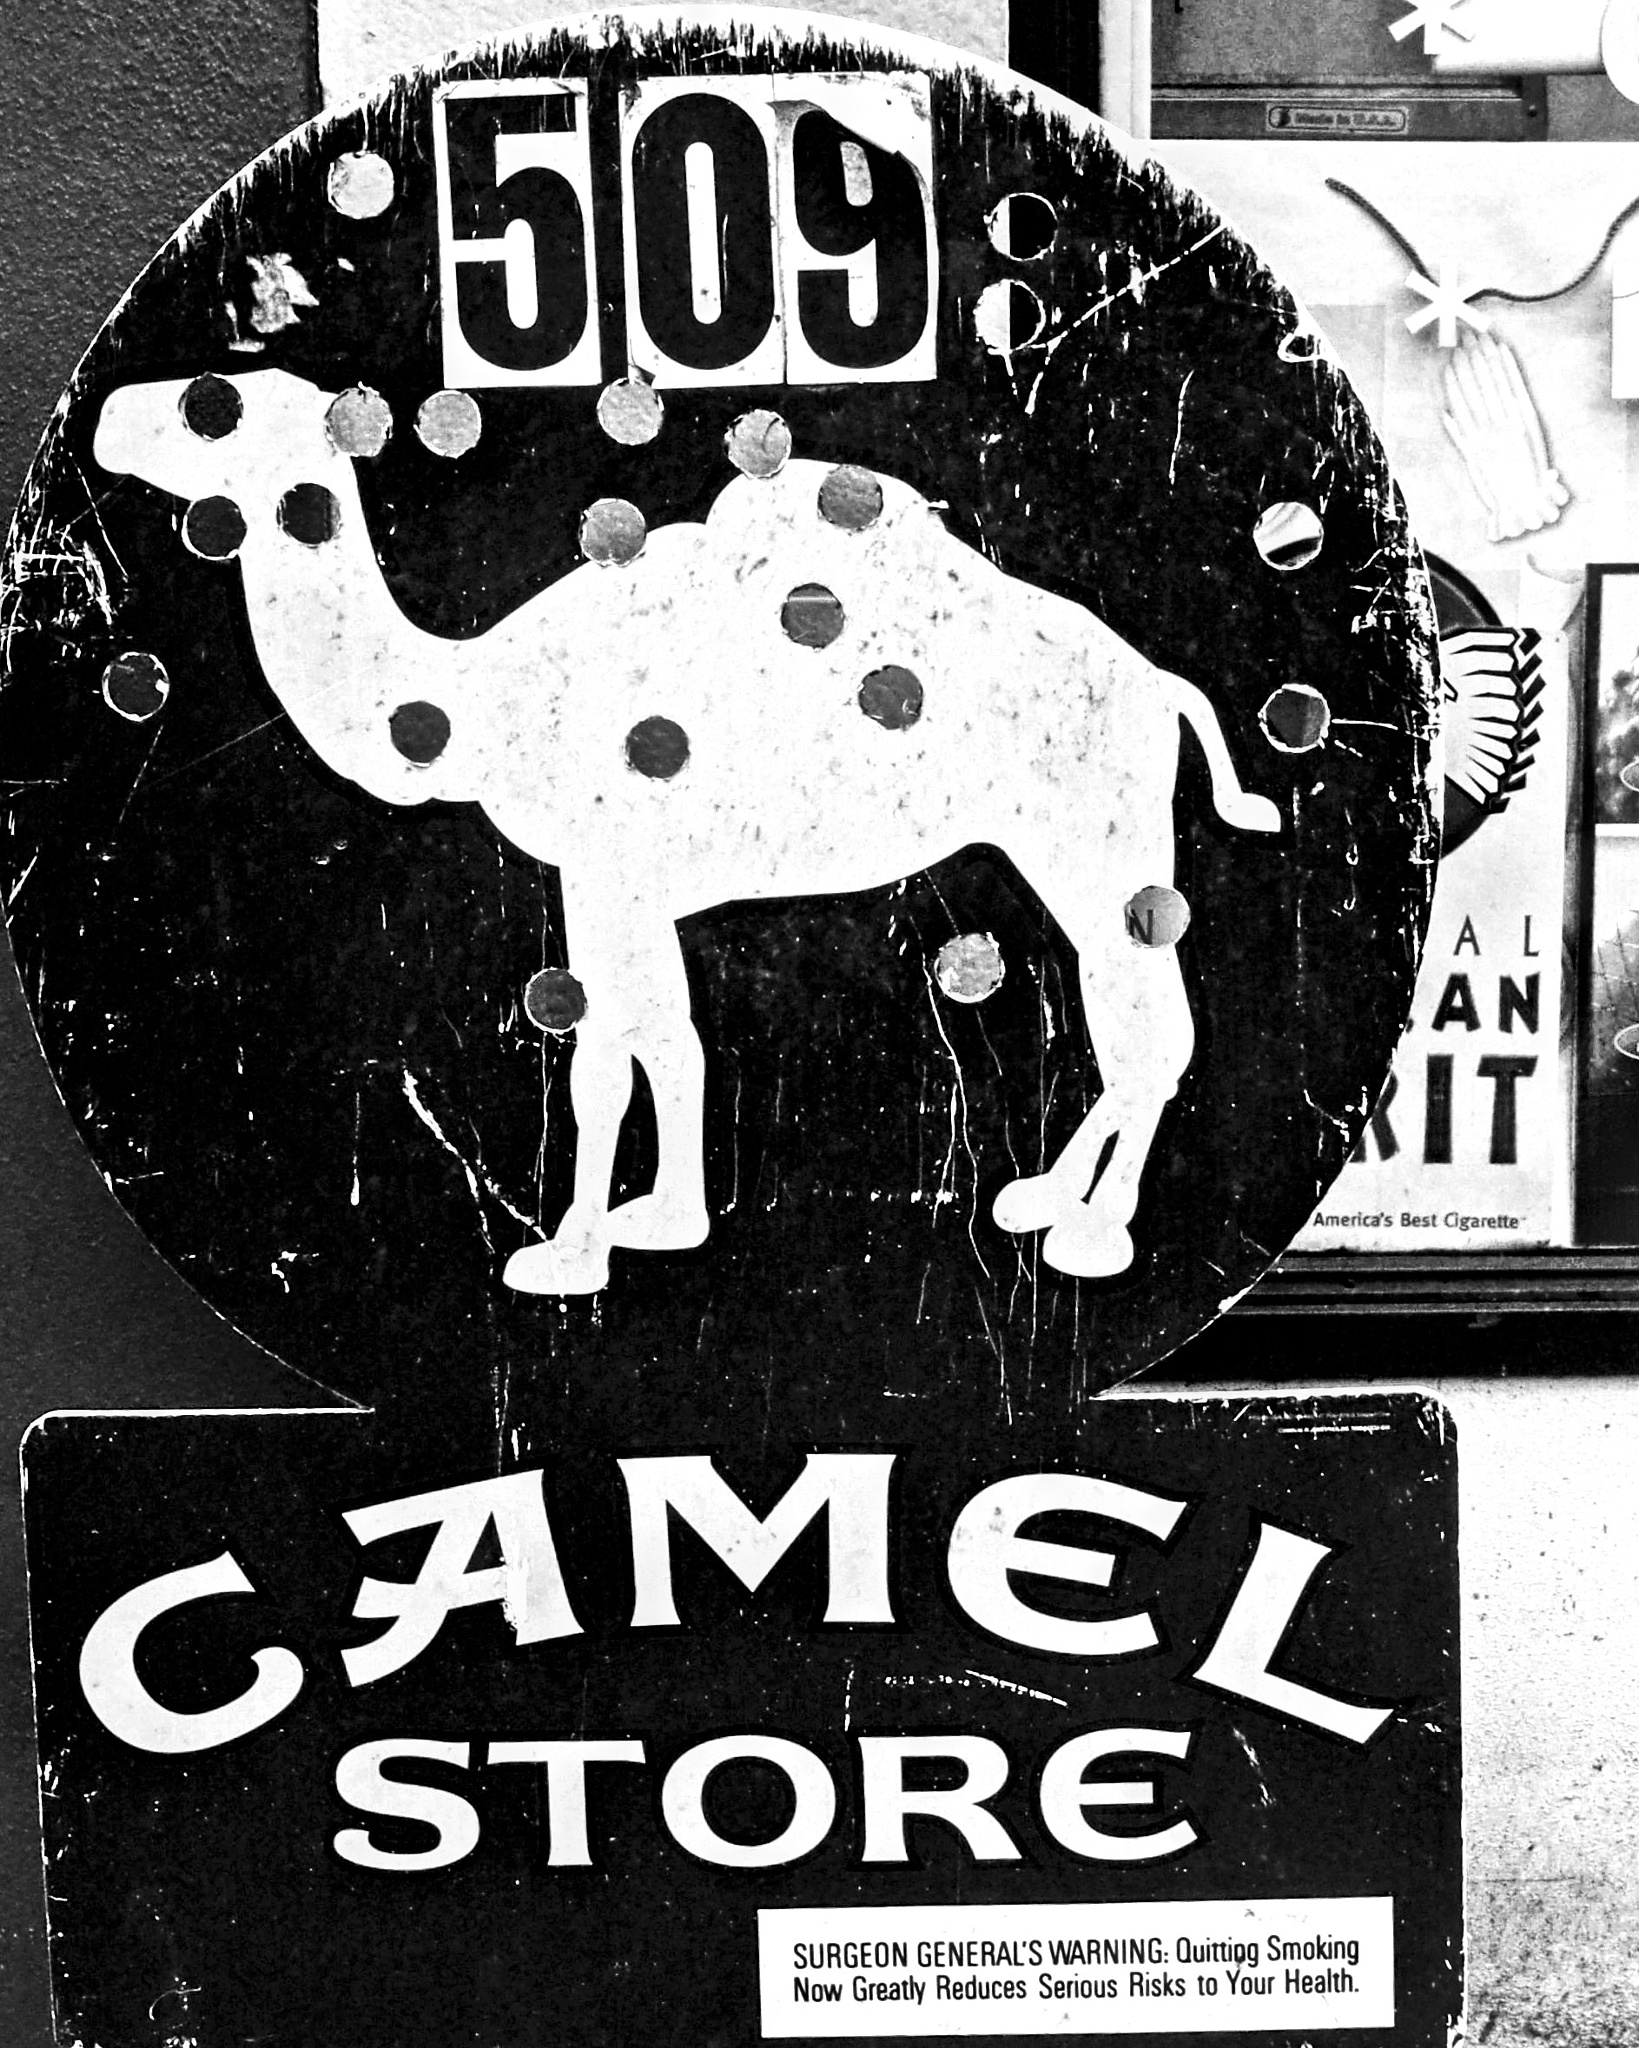 Camel Store Sign by peter.herzog.3323